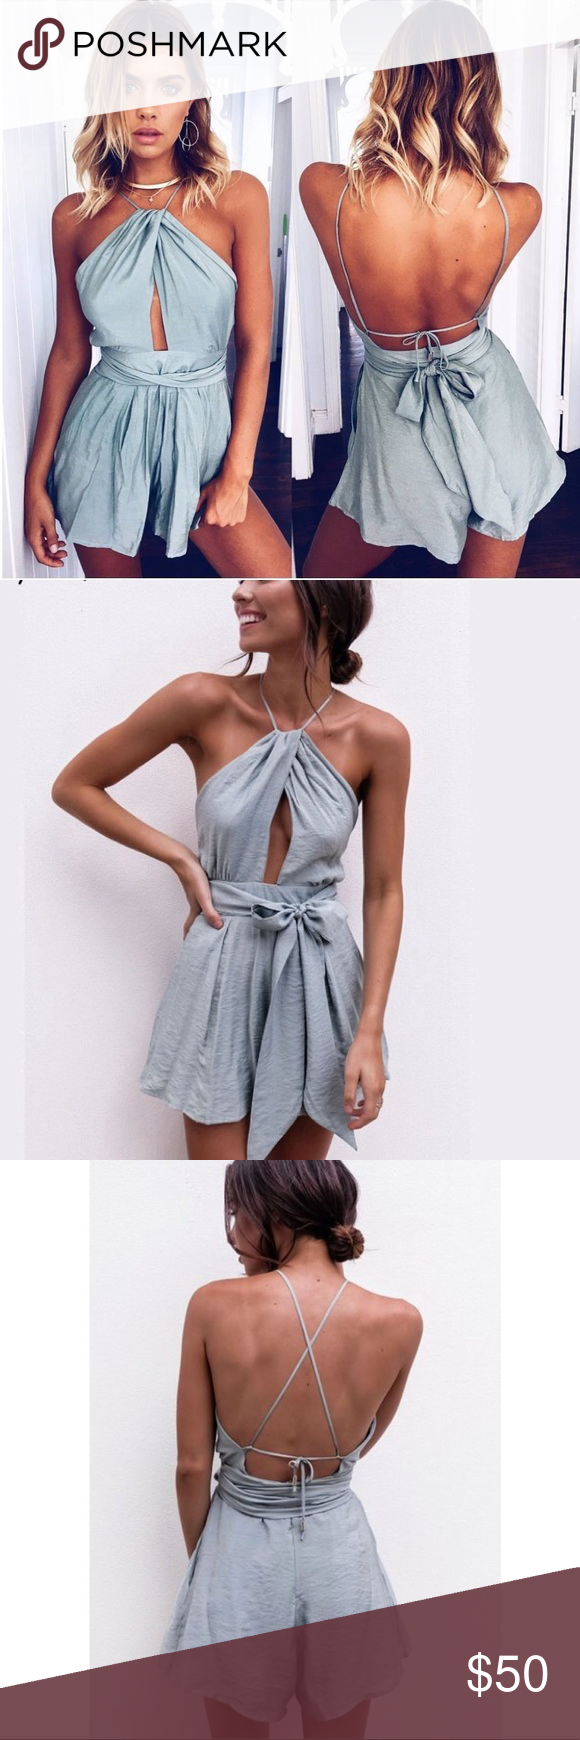 ee4ea539f5b3 SALE❗️Blue Sexy Romper JUST IN! Only one medium available. Super adorable casual  camis playsuit cut out sexy bodysuit women shorts boho jumpsuit vestido ...